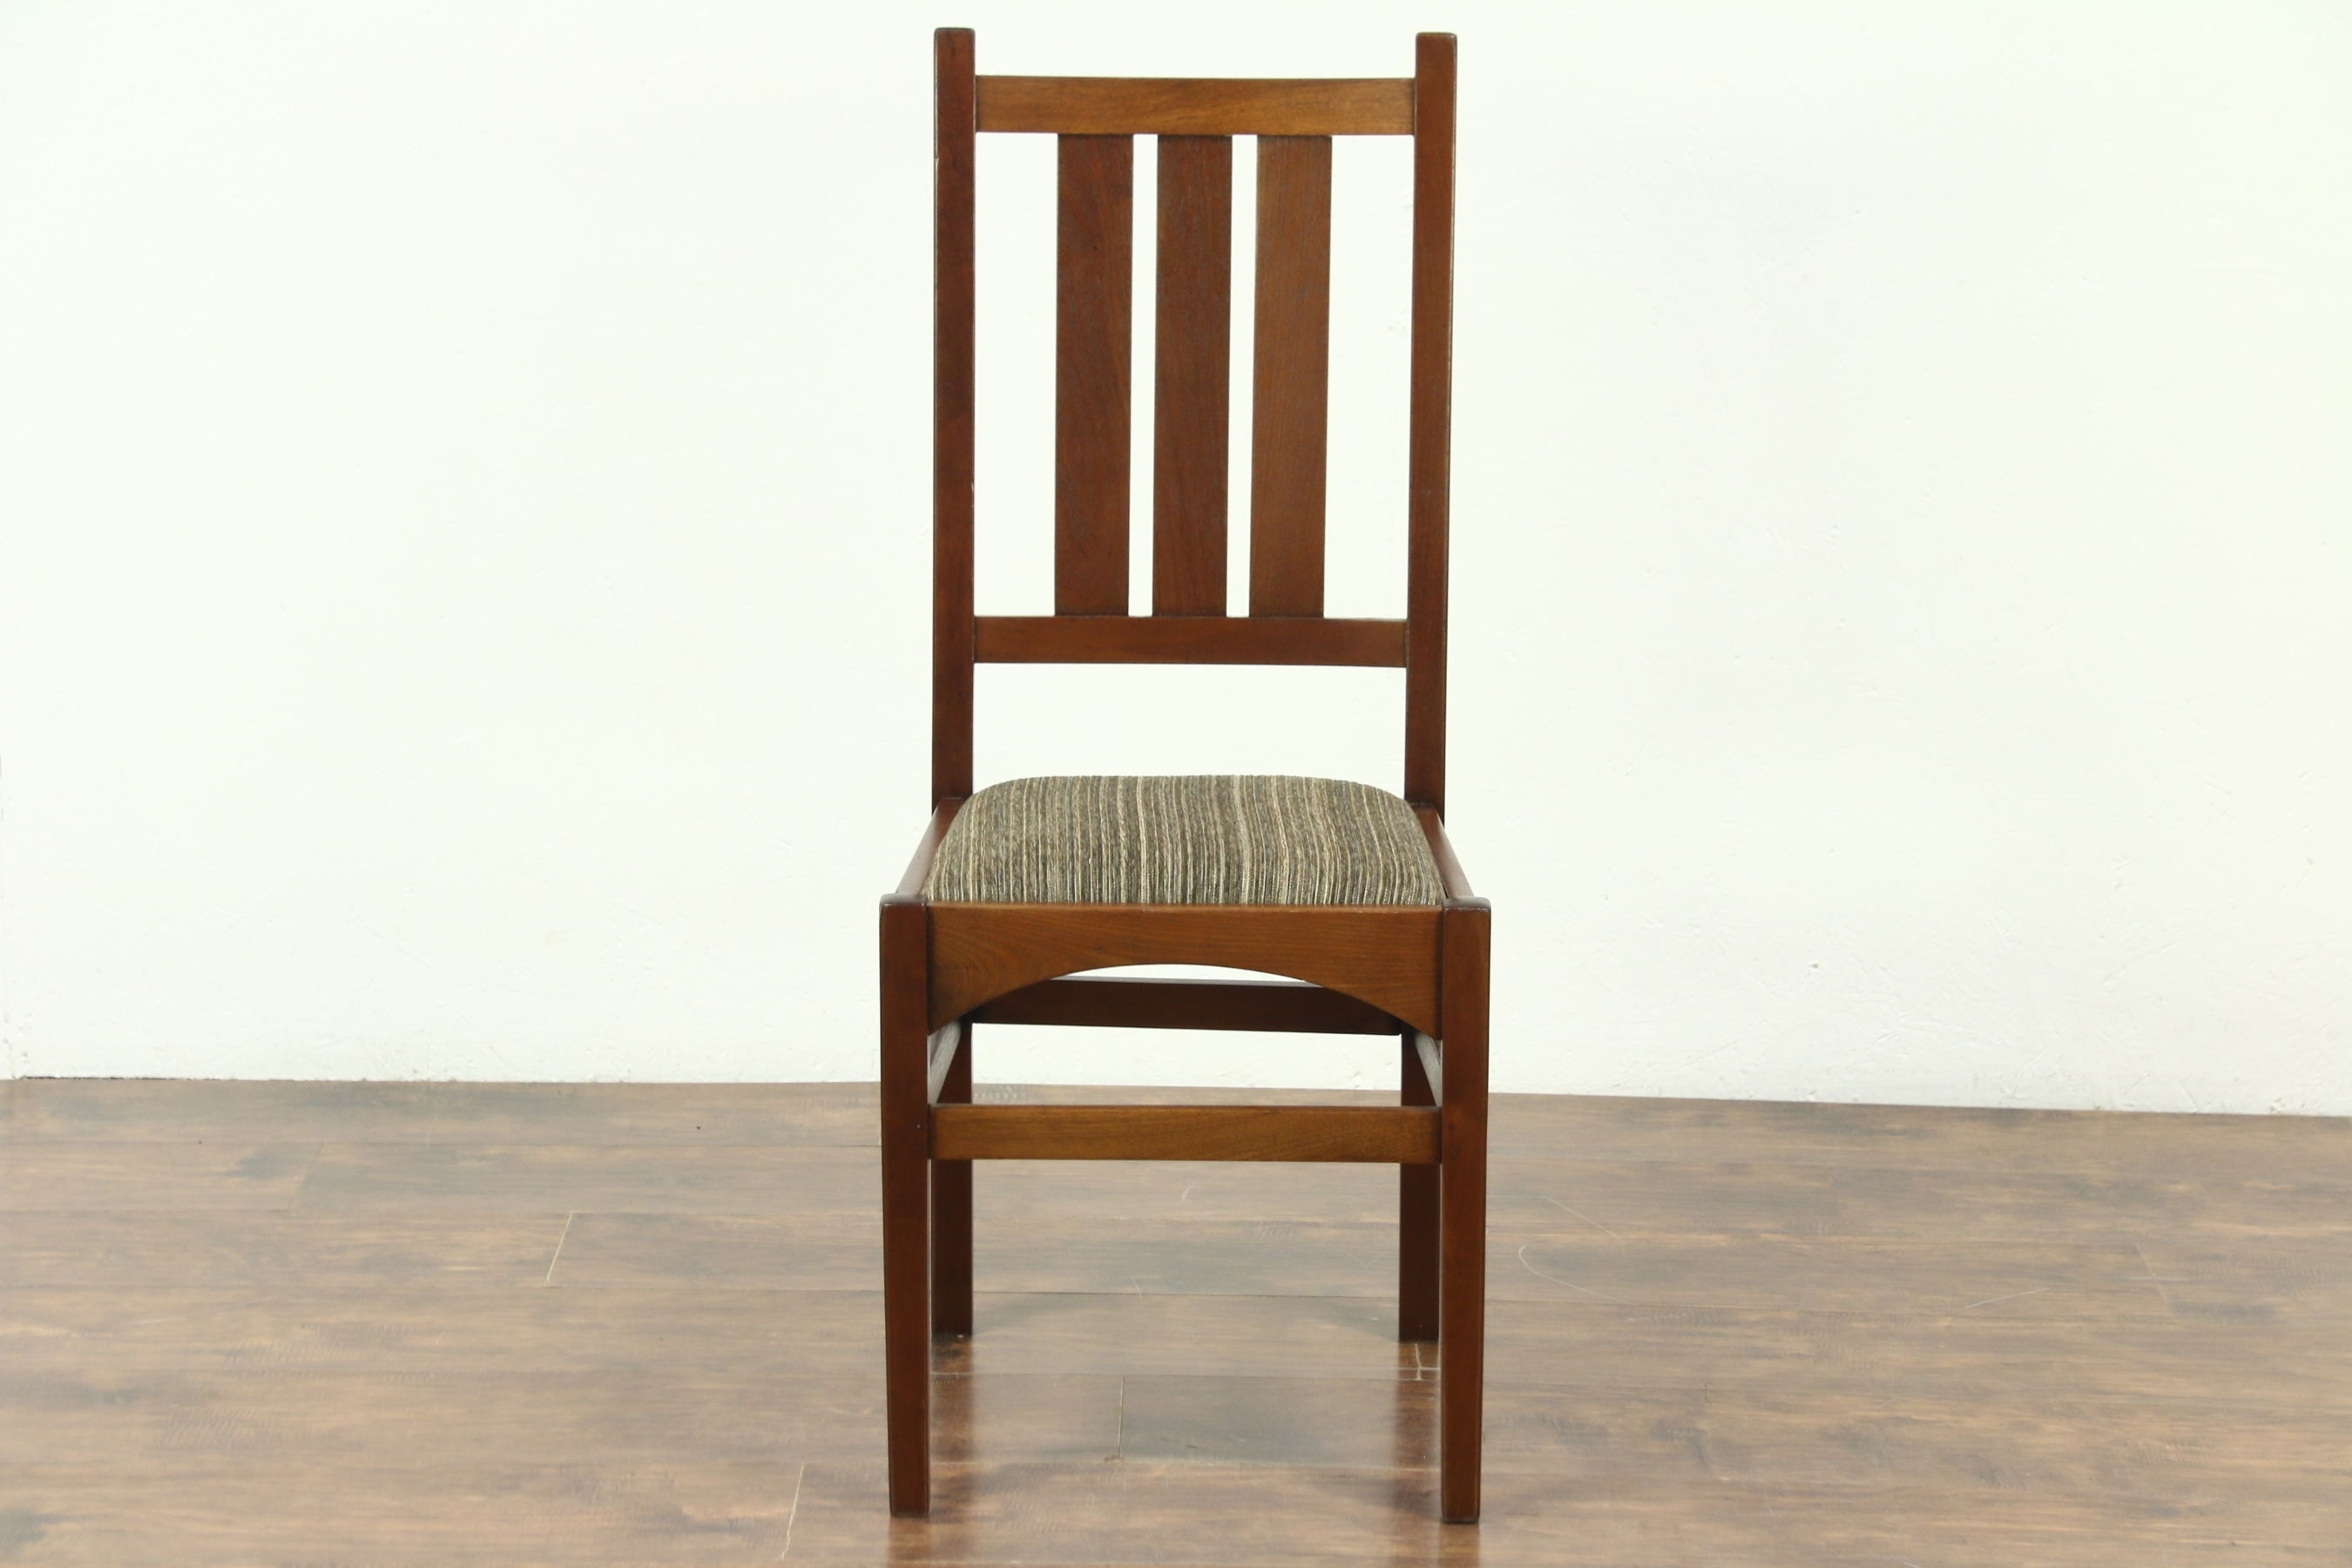 Craftsman Upholstered Side Chairs Within Best And Newest Sold – Arts & Crafts Antique Craftsman Desk Or Arm Chair, New (View 7 of 20)